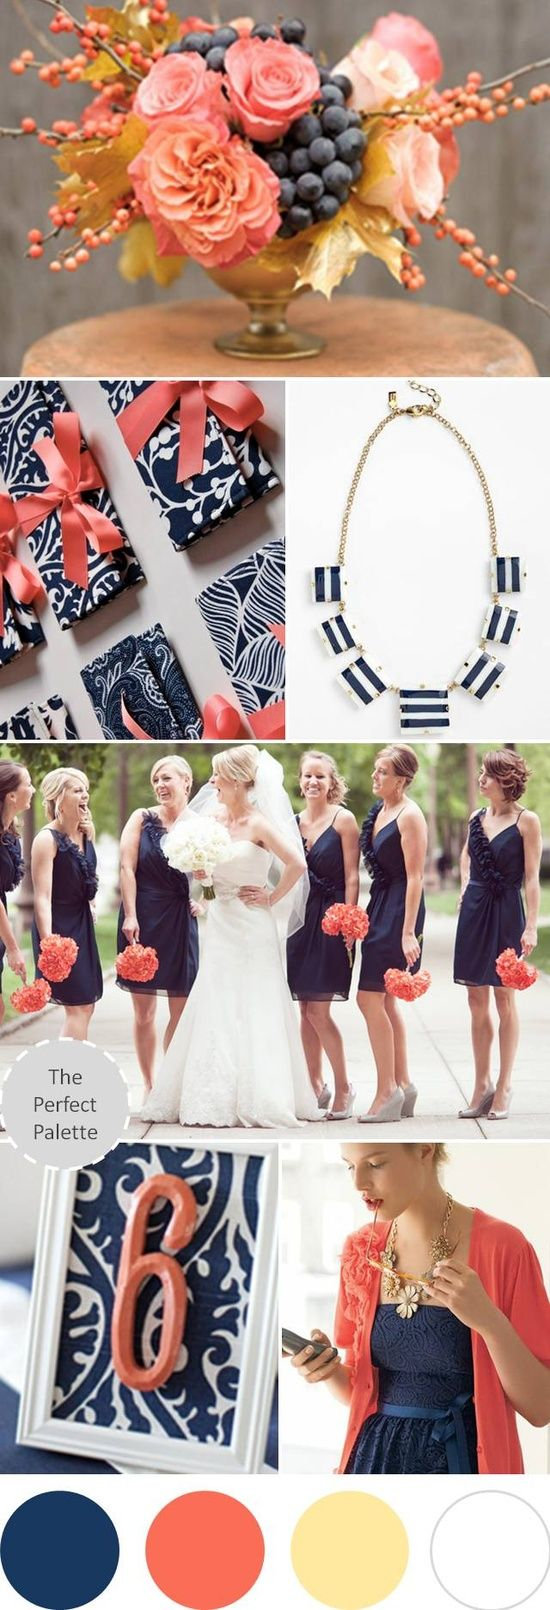 Navy blue dress for spring wedding  The Perfect Palette Wedding Colors I love Navy Blue Coral Antique